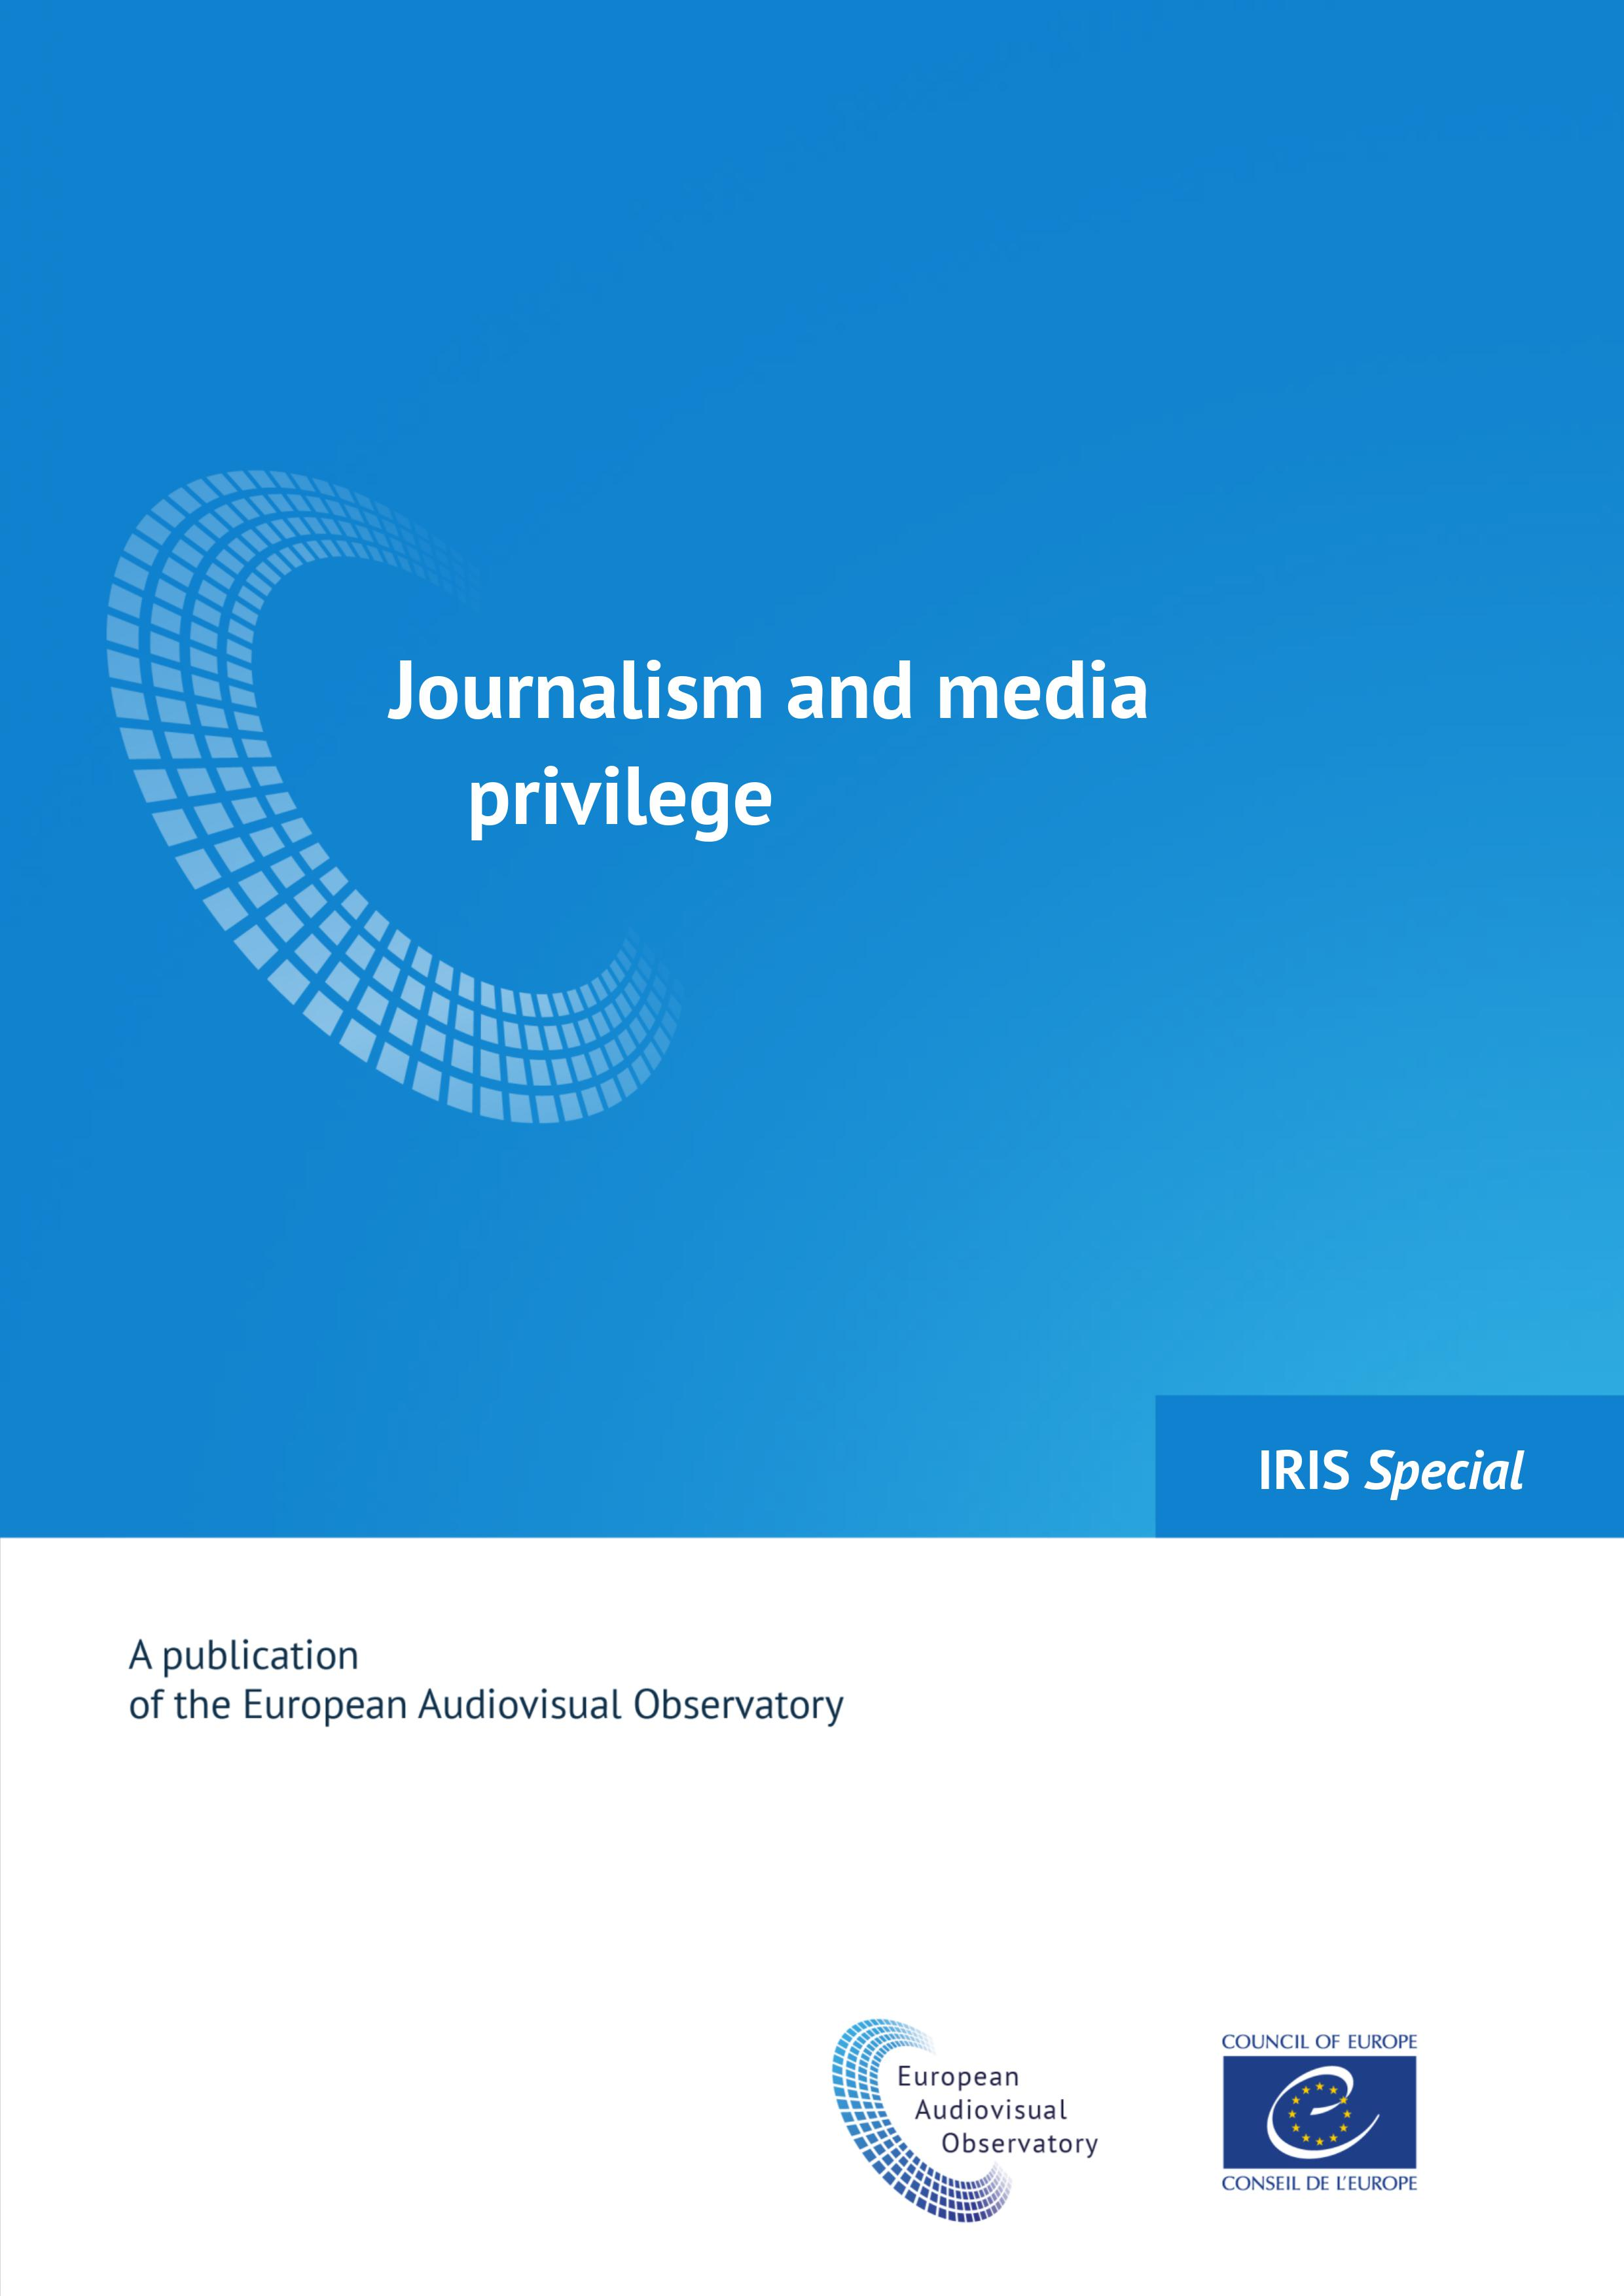 Journalism and media privilege (2017)